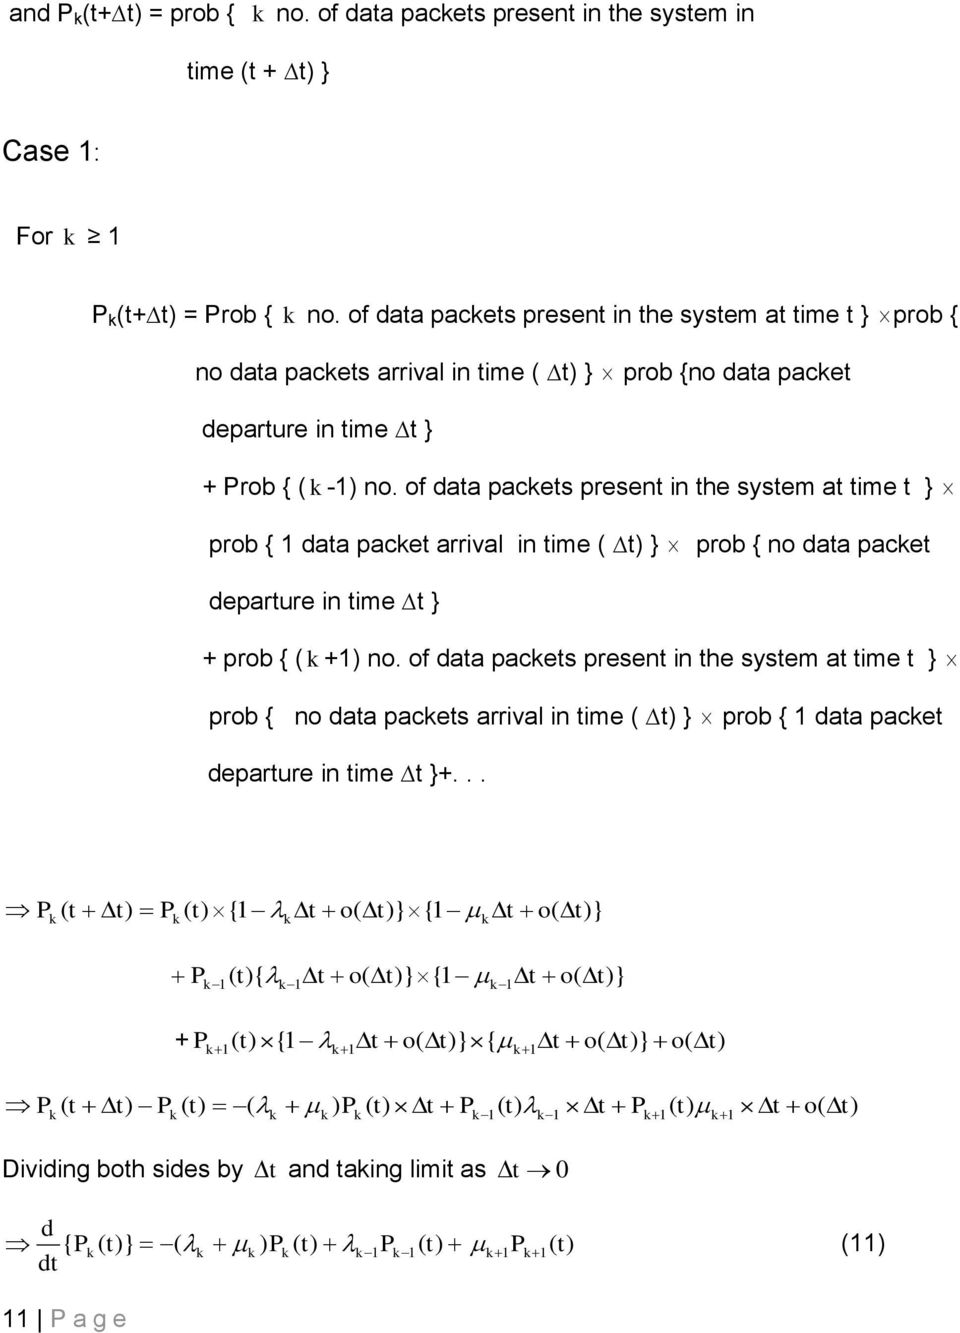 of data pacets preset i the system at time t } prob { data pacet arrival i time t } prob { o data pacet departure i time t } + prob { + o.